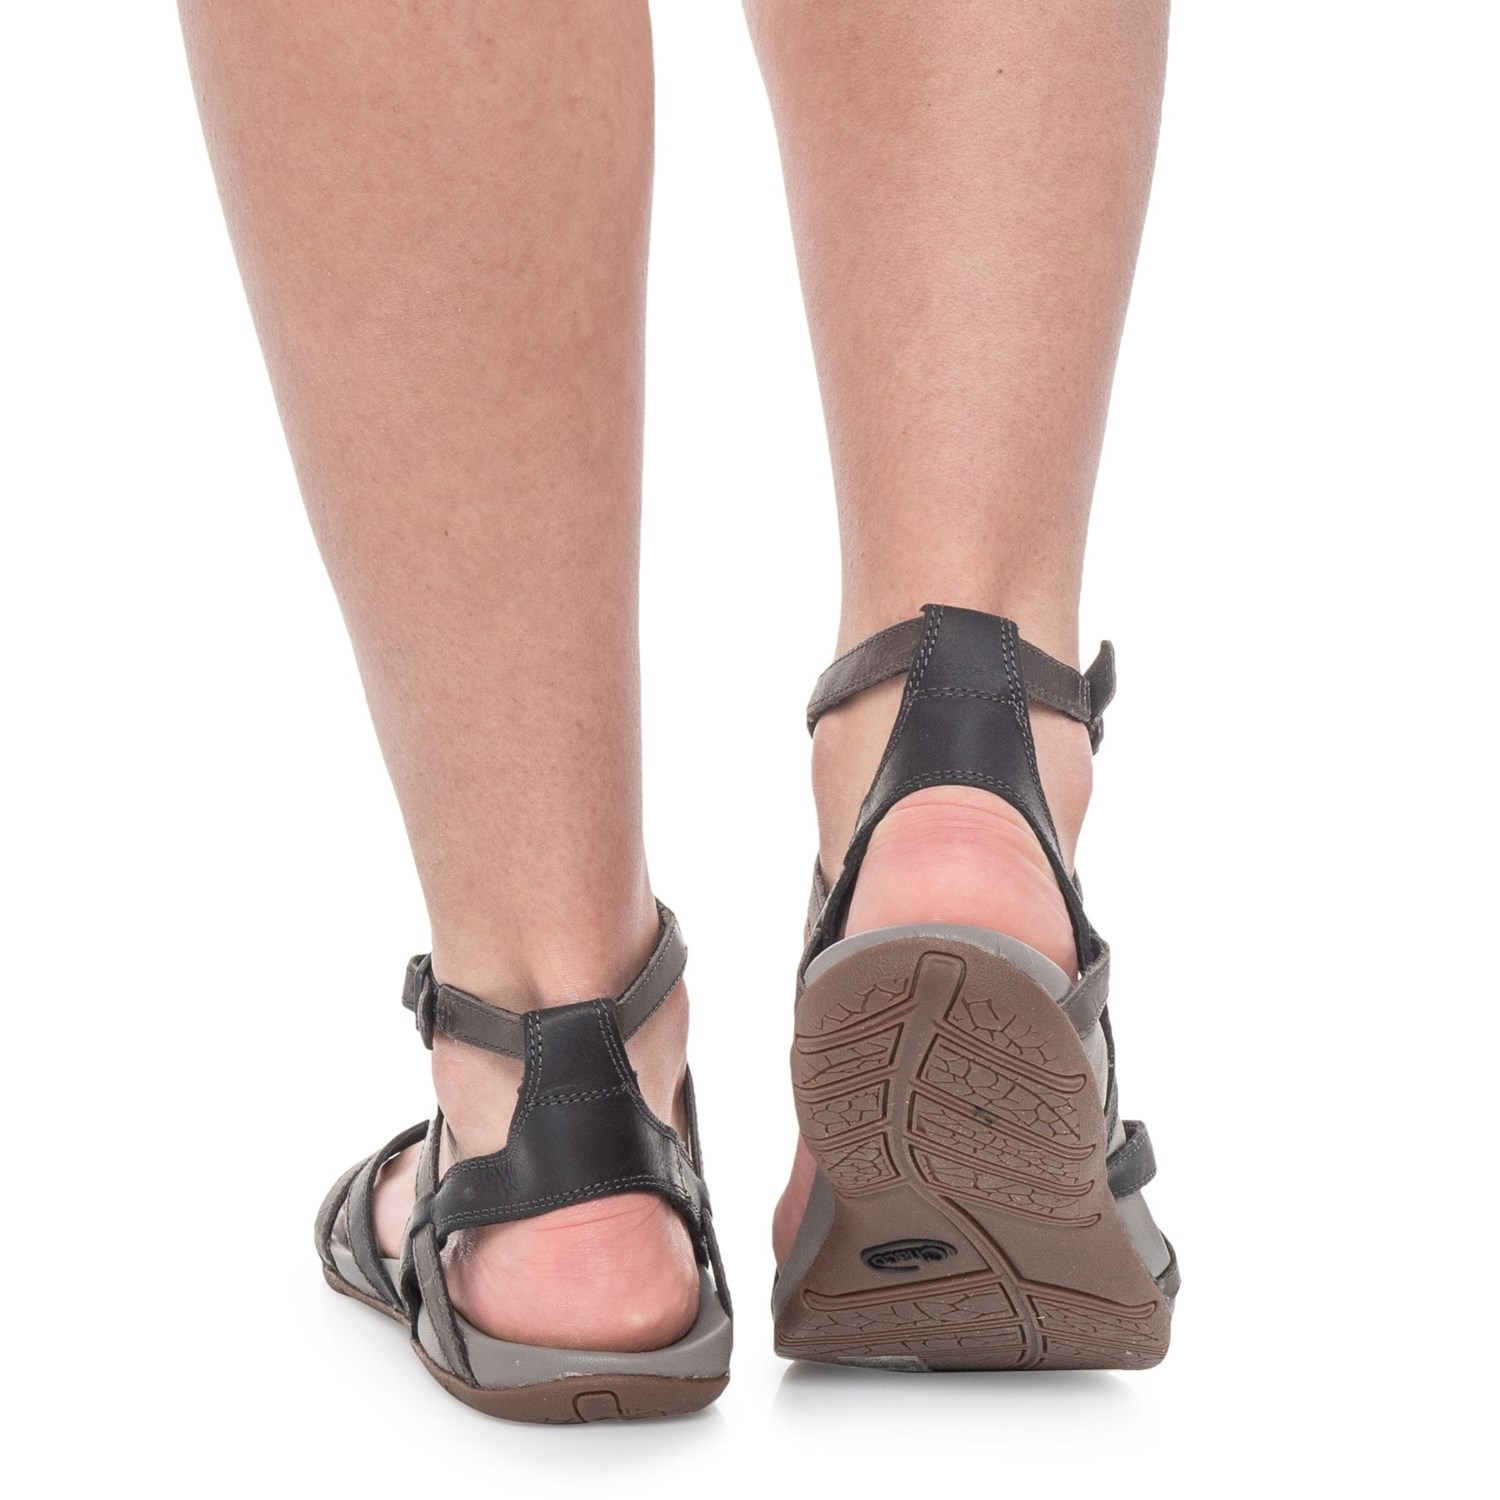 046fa5a461df Chaco Juniper Sandals (For Women) - Save 40%